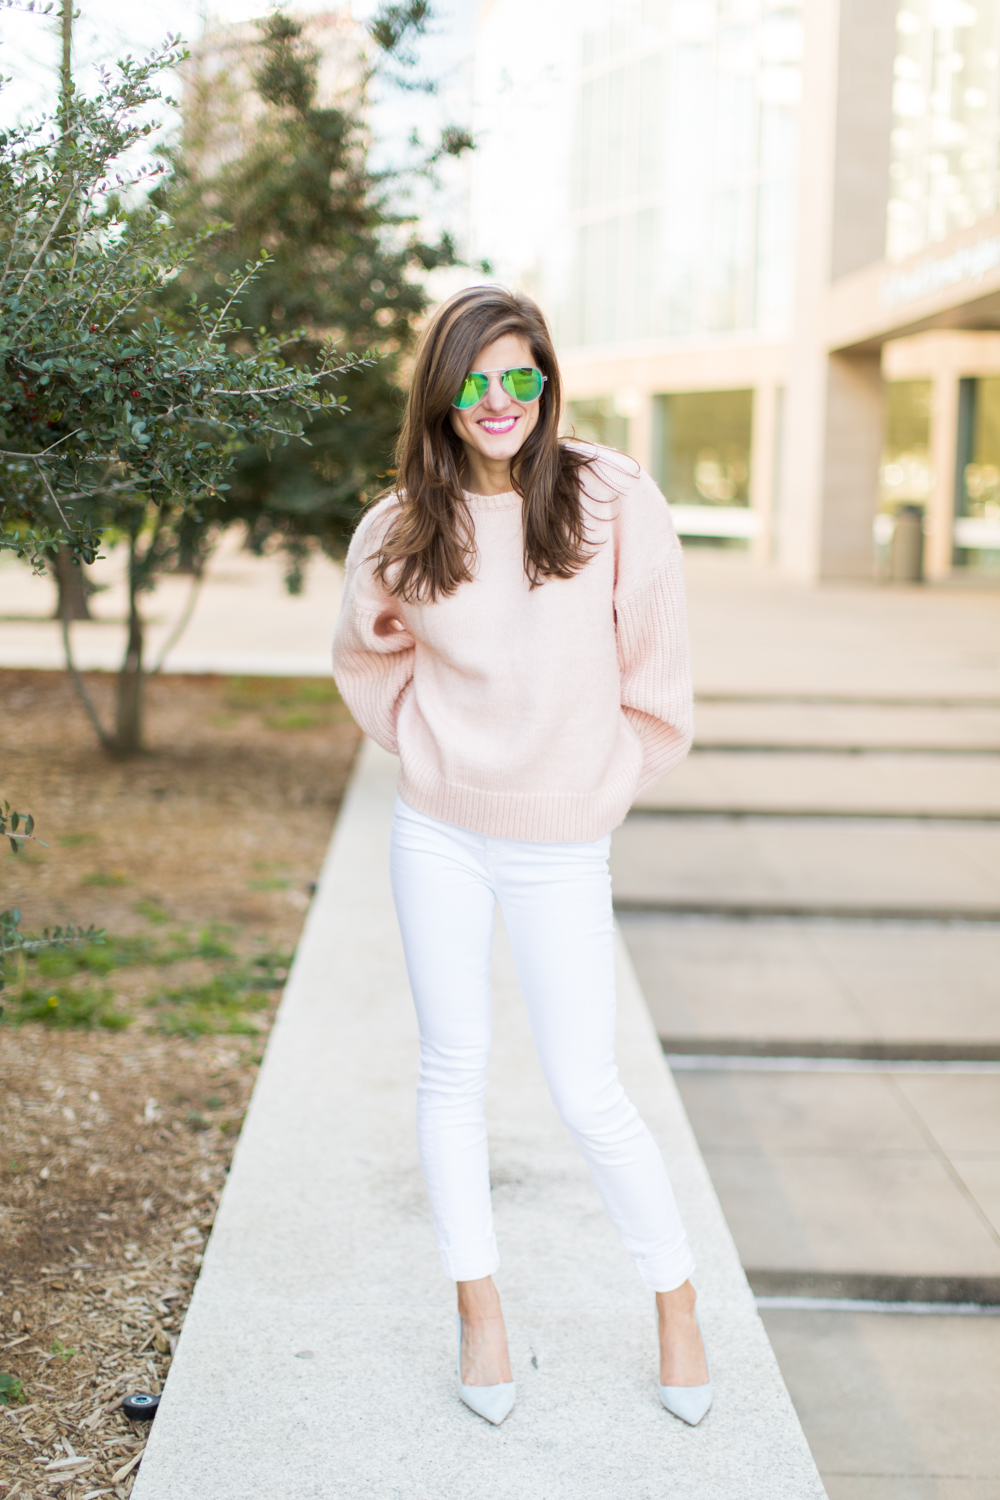 white jeans outfit, white jeans after labor day outfit, winter white jeans outfit, pastel pink and and blue outfit, oversized blush pink sweater with white jeans and stilettos, casual chic outfit